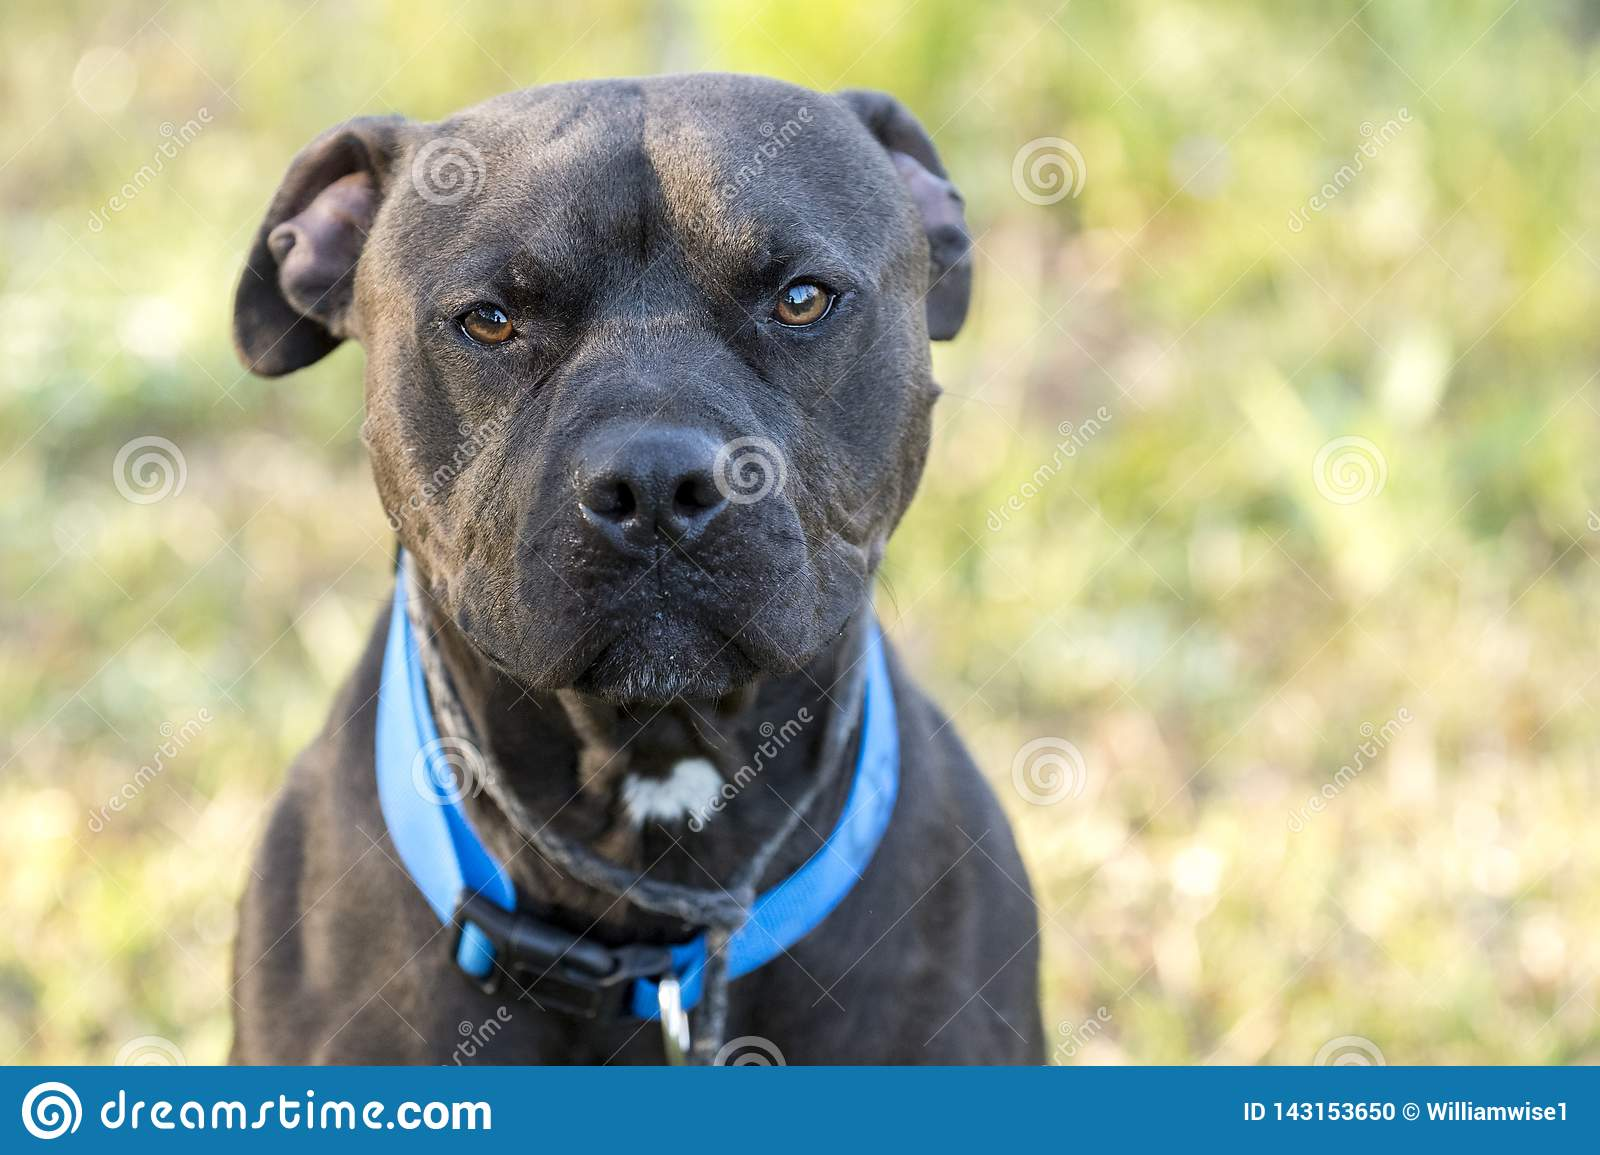 Black Pitbull Dog With Blue Collar Stock Photo - Image of